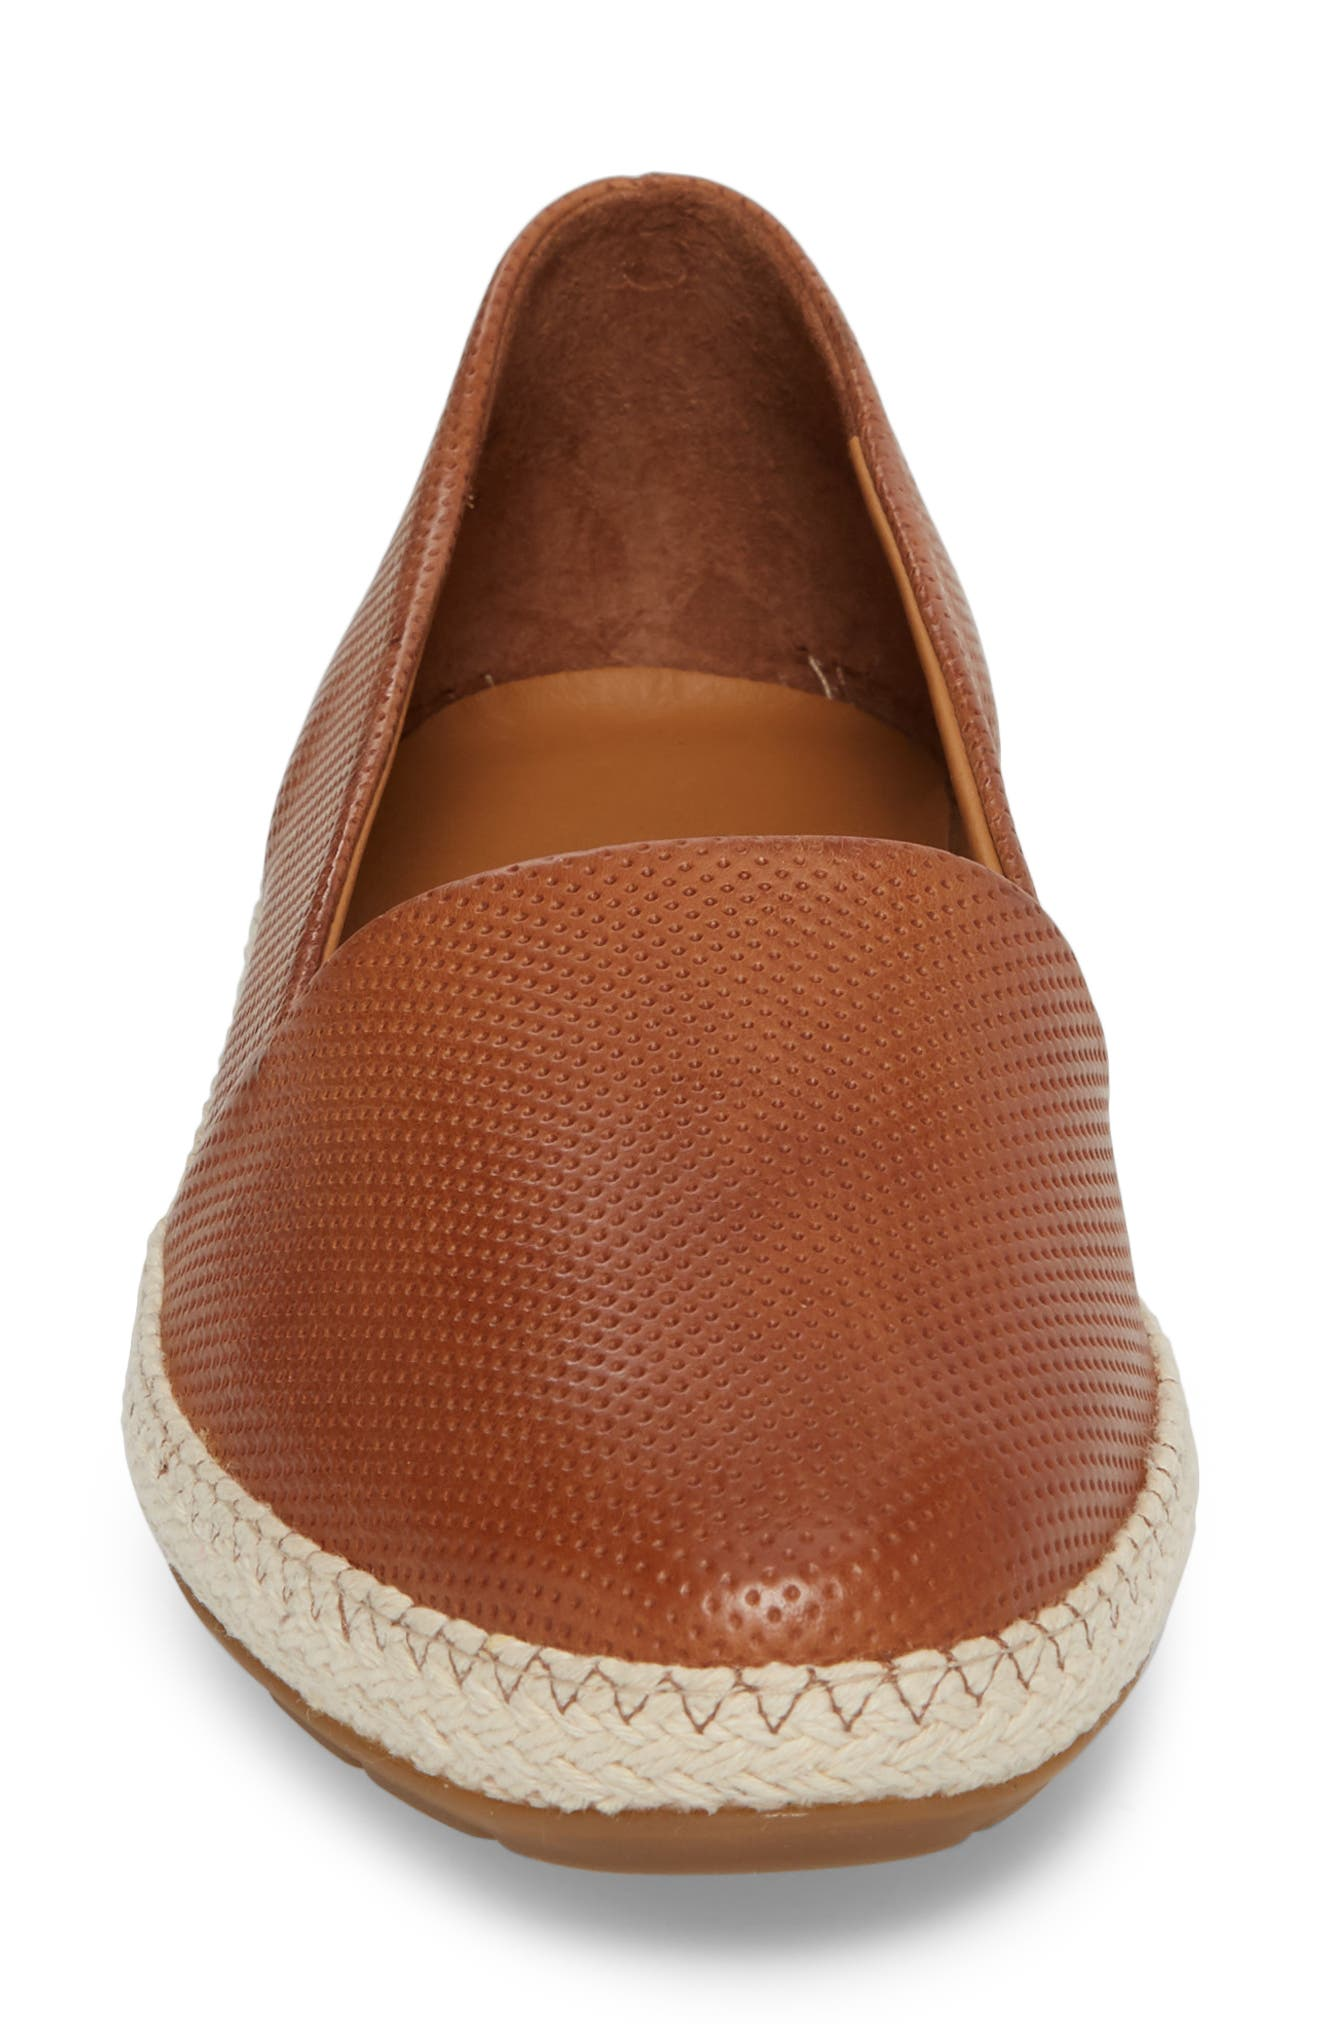 Roxy Espadrille,                             Alternate thumbnail 4, color,                             Cuoio Leather